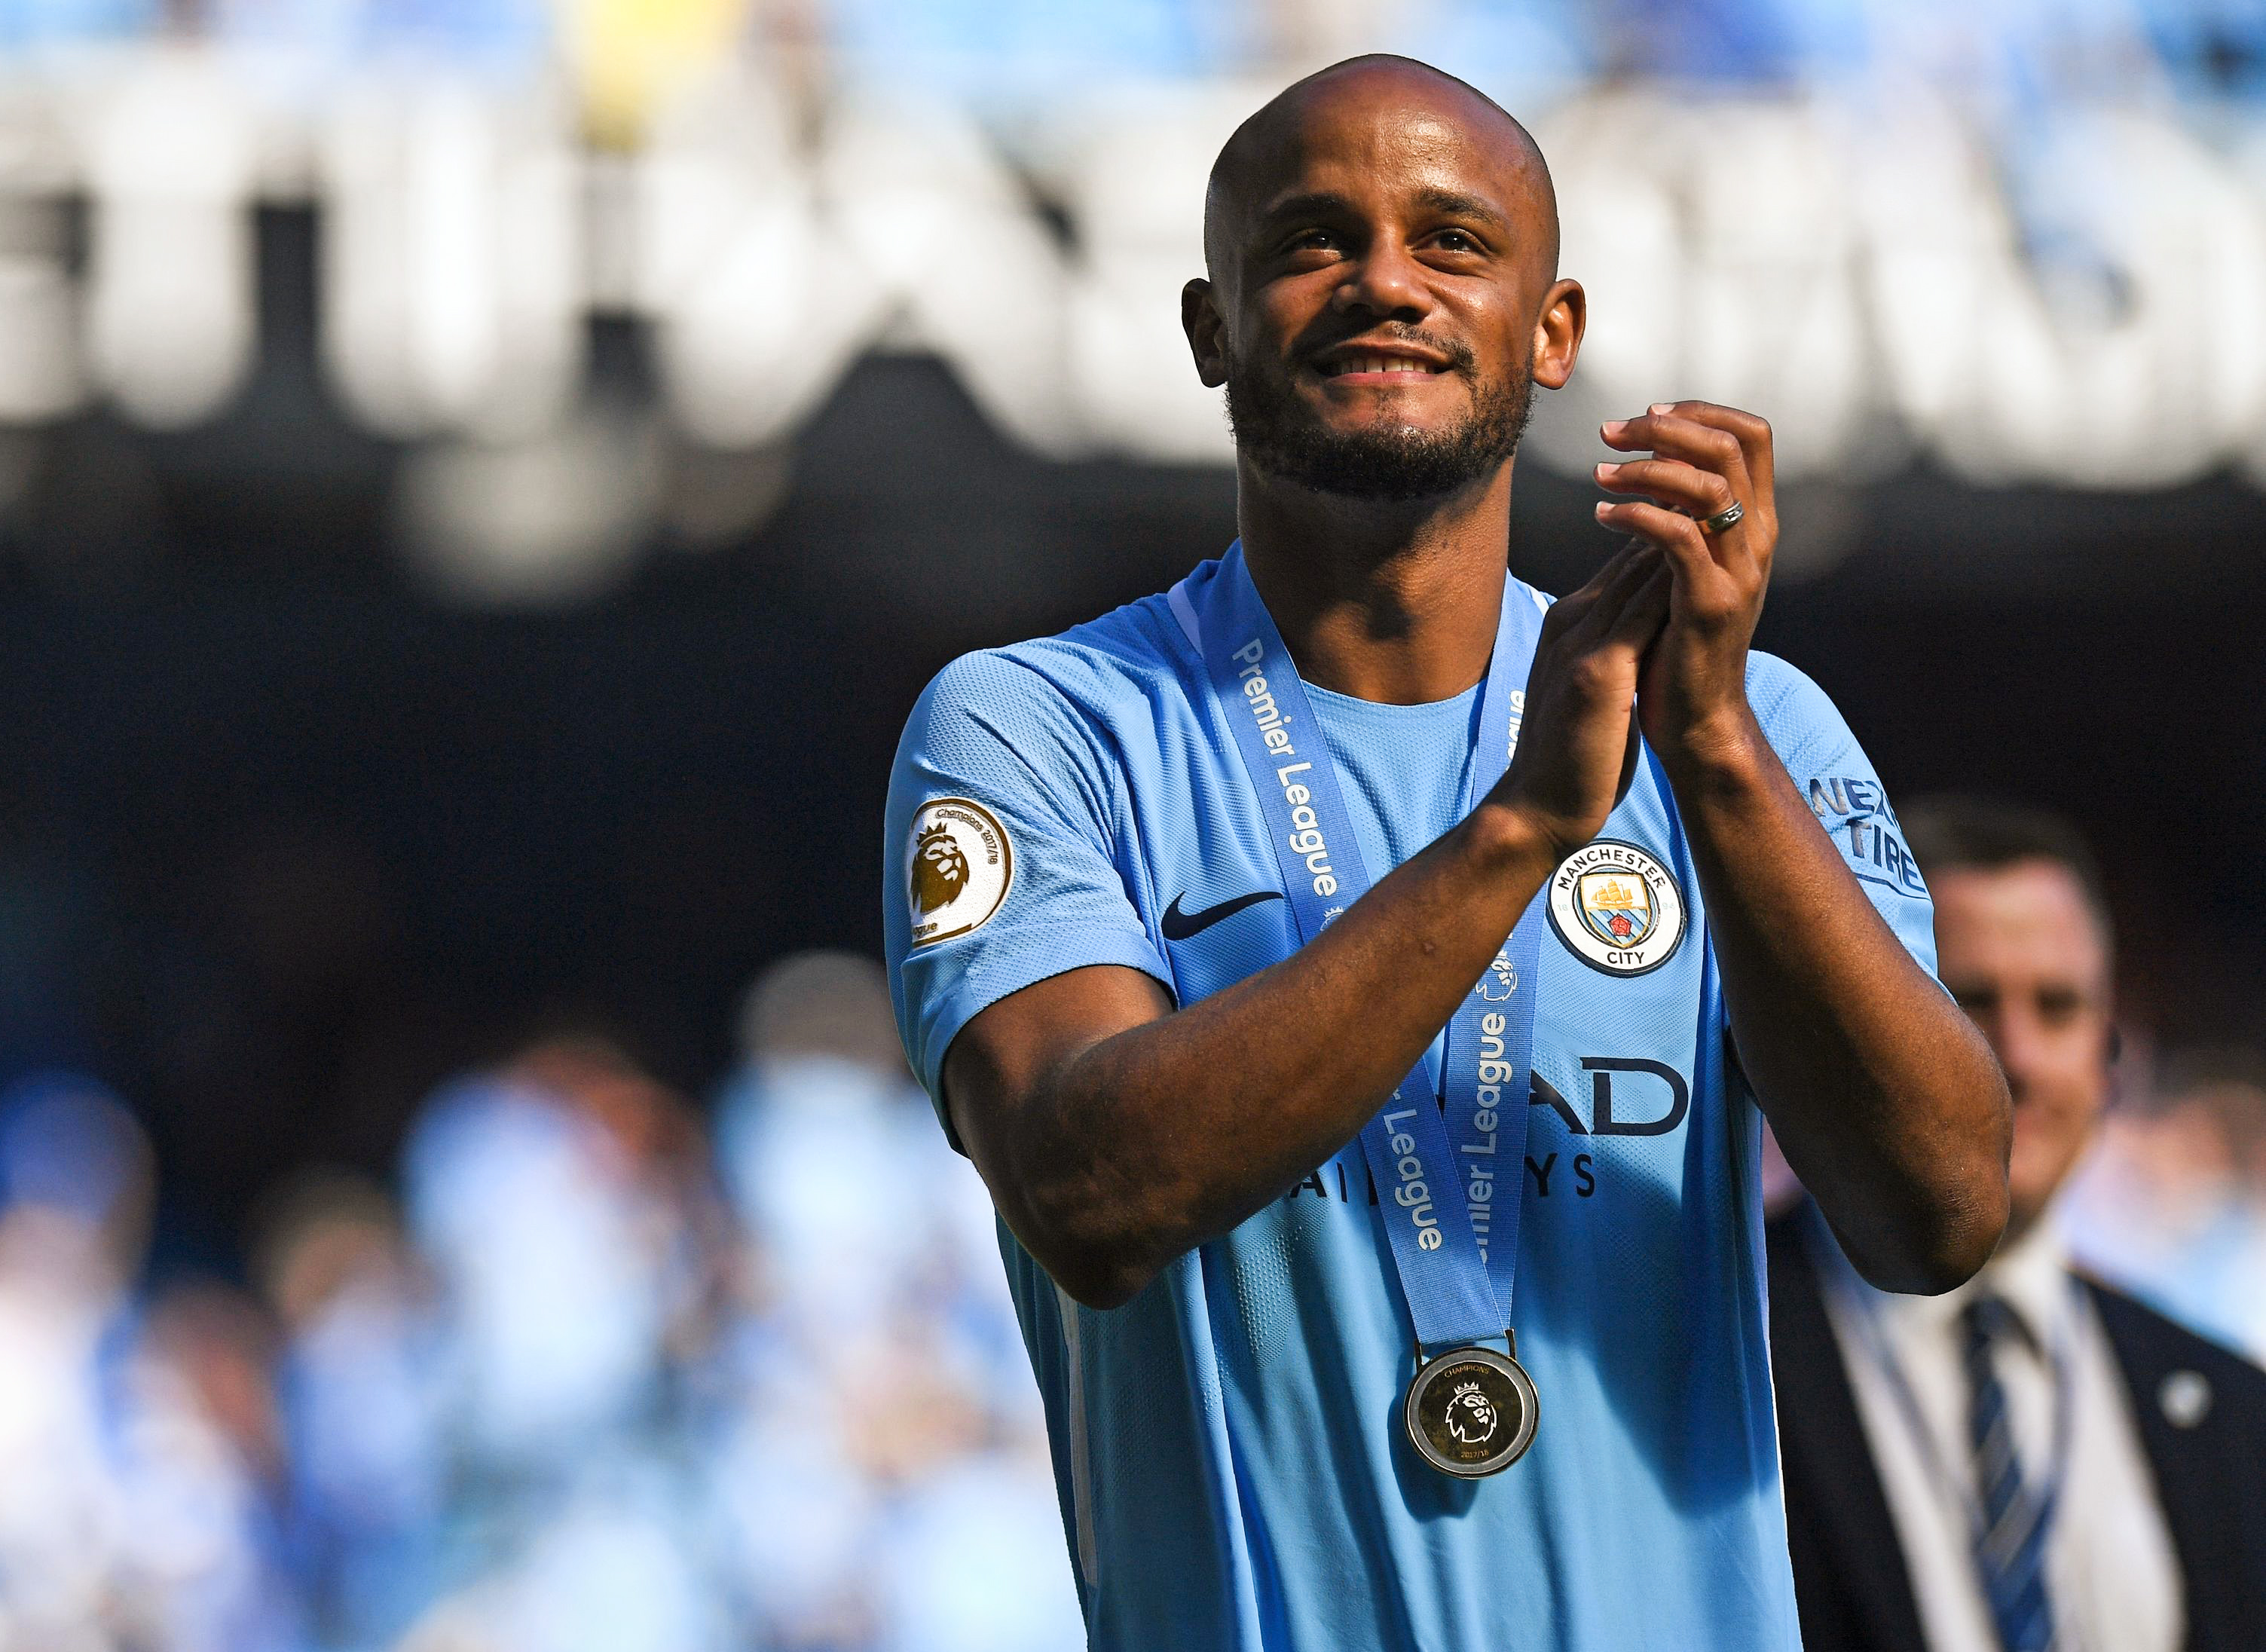 bf899e37d2e Vincent Kompany  the articulate outlier who rose to Manchester City legend